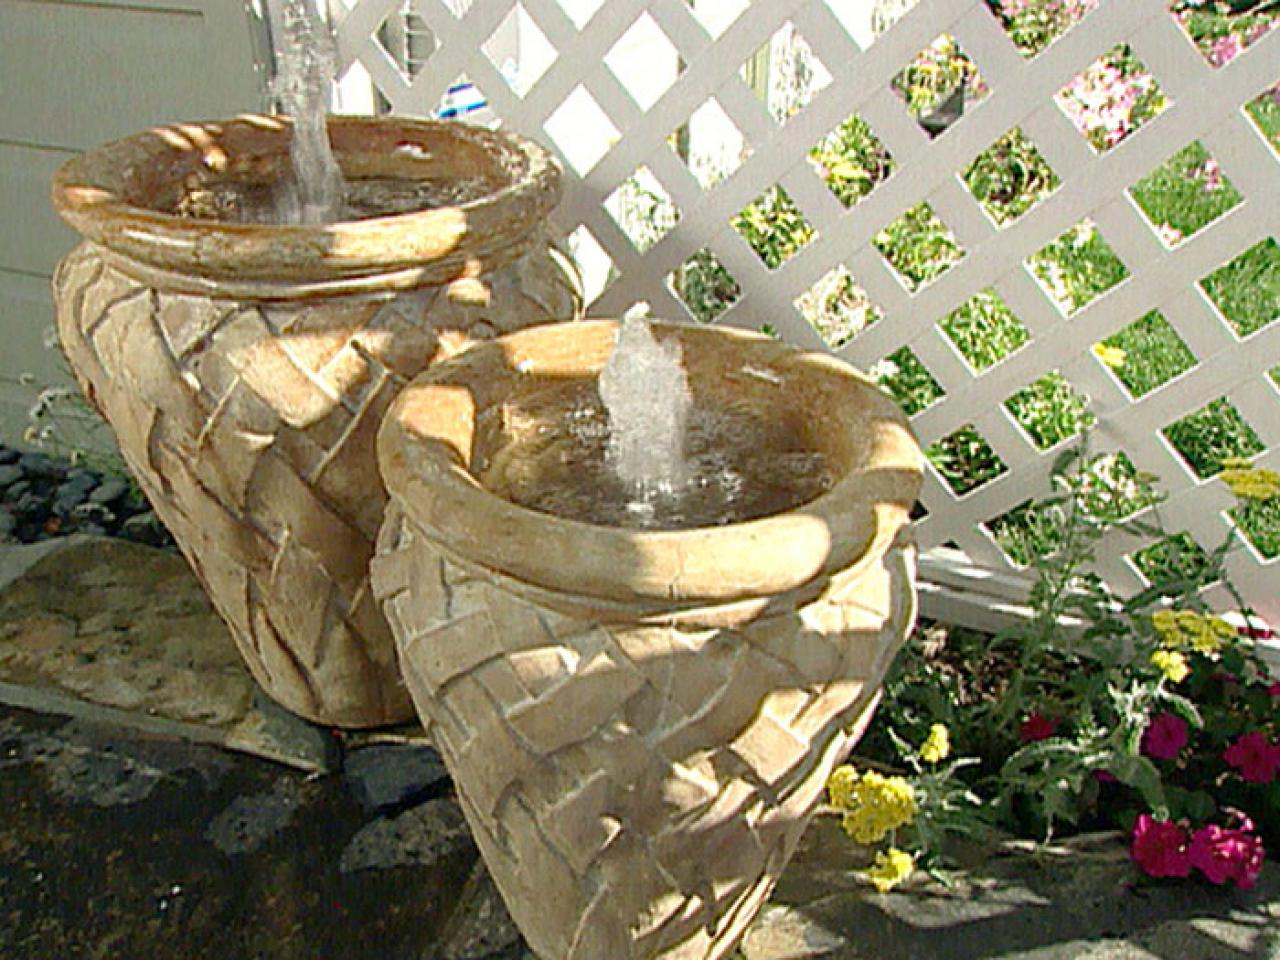 Top 3 Water Features To Liven Up A Backyard This Summer